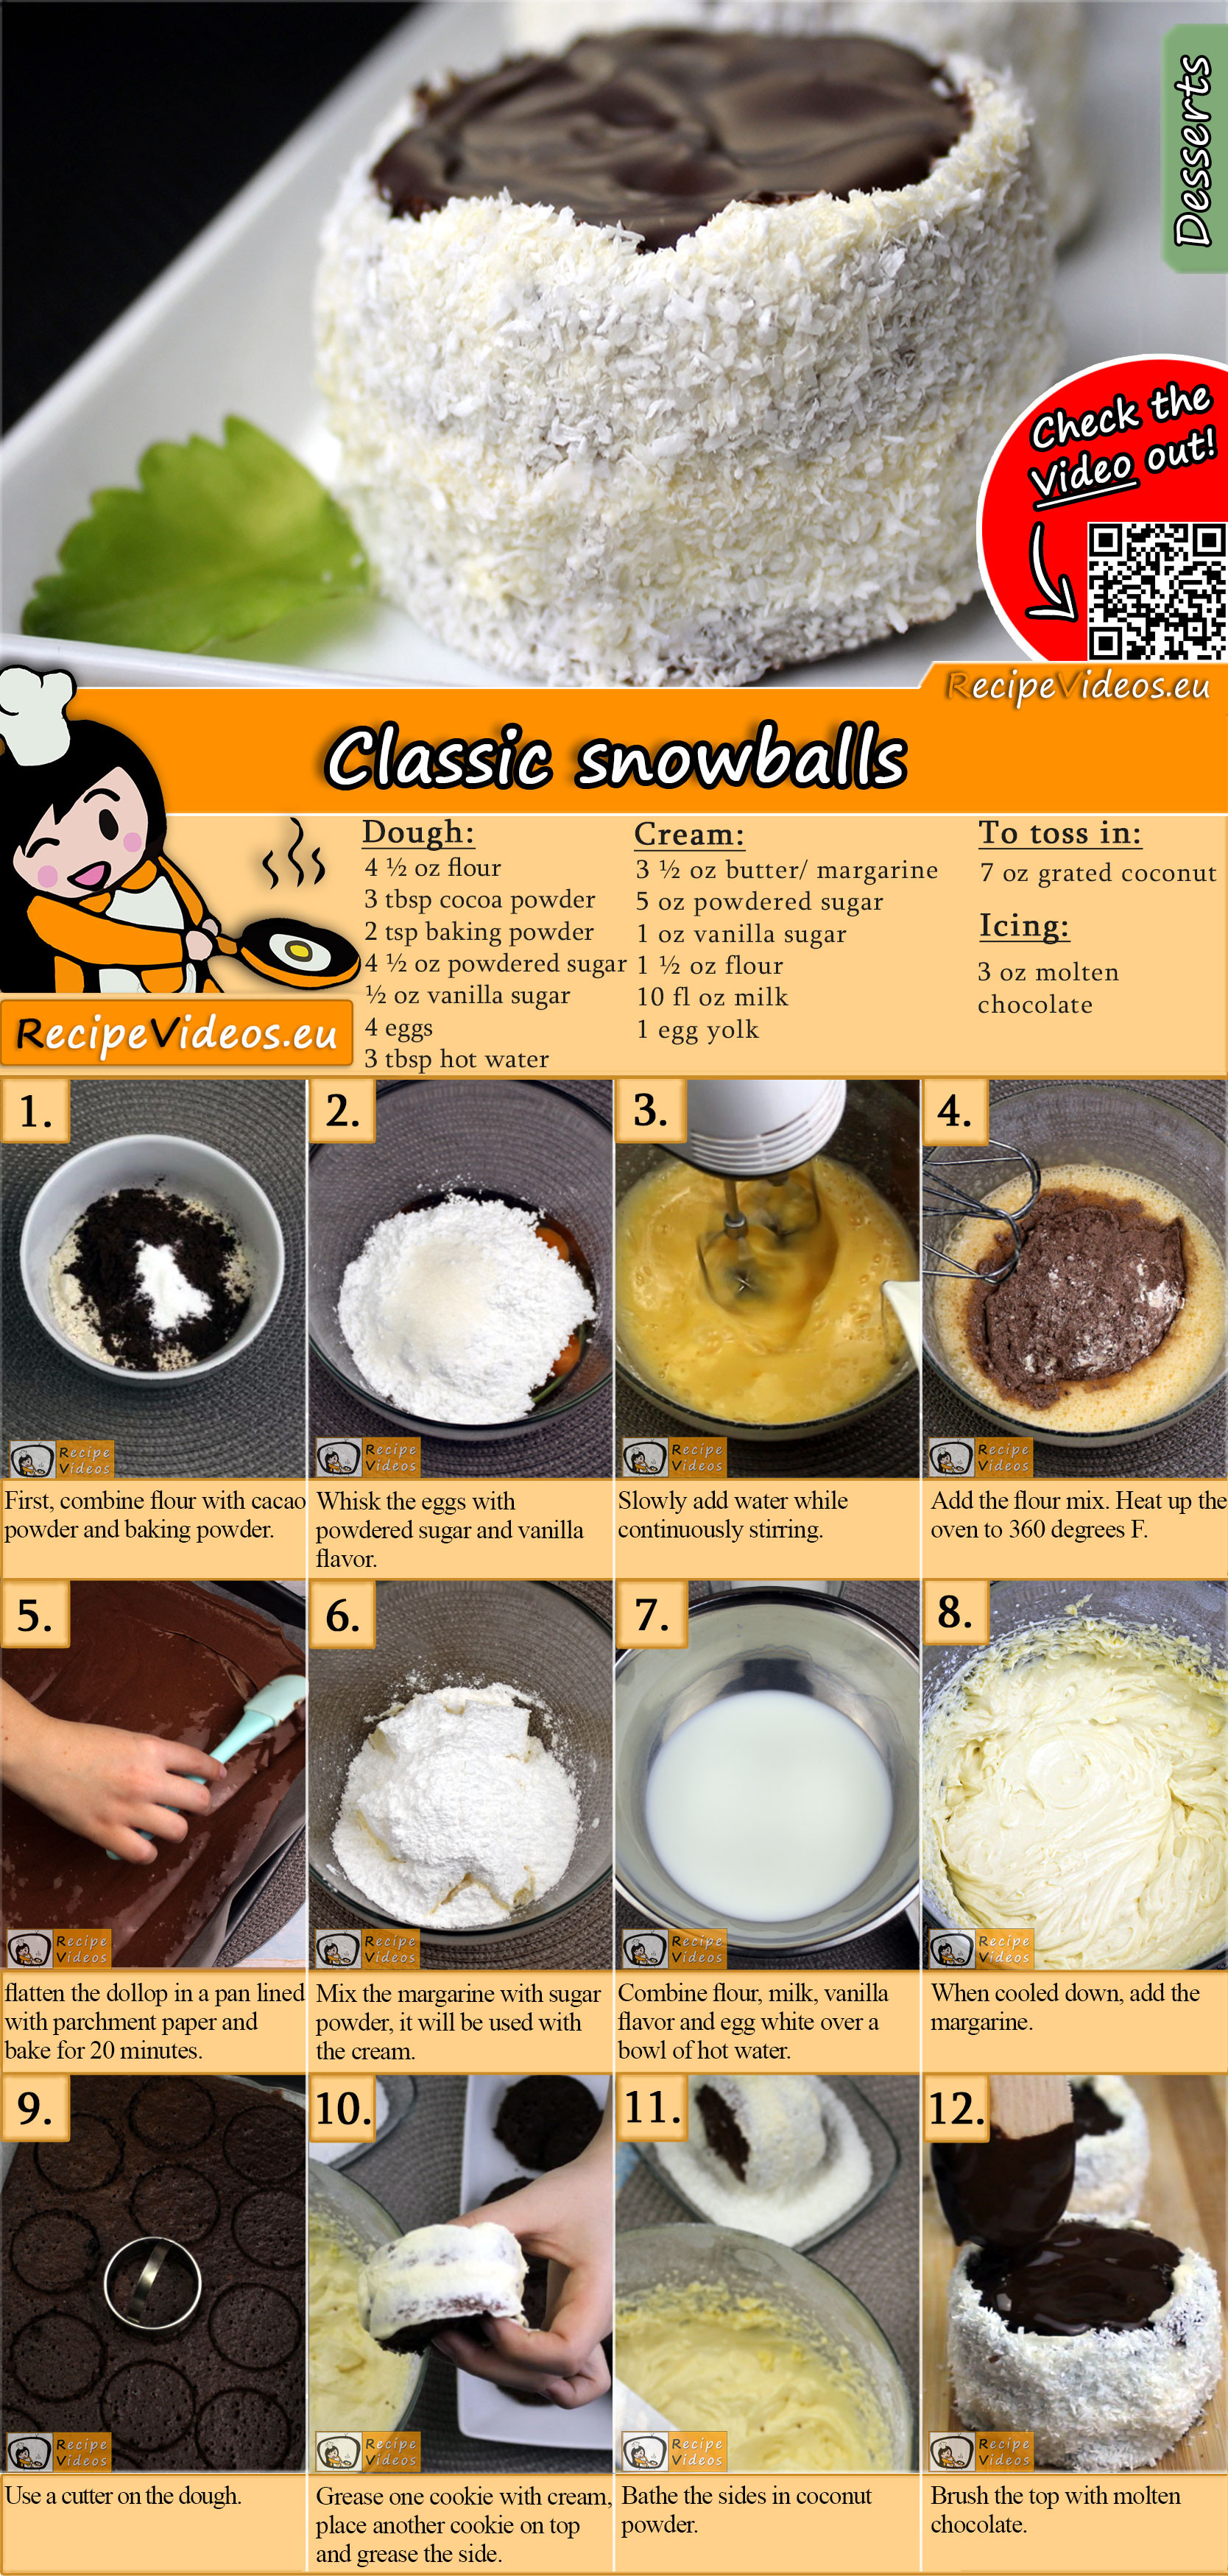 Classic snowballs recipe with video